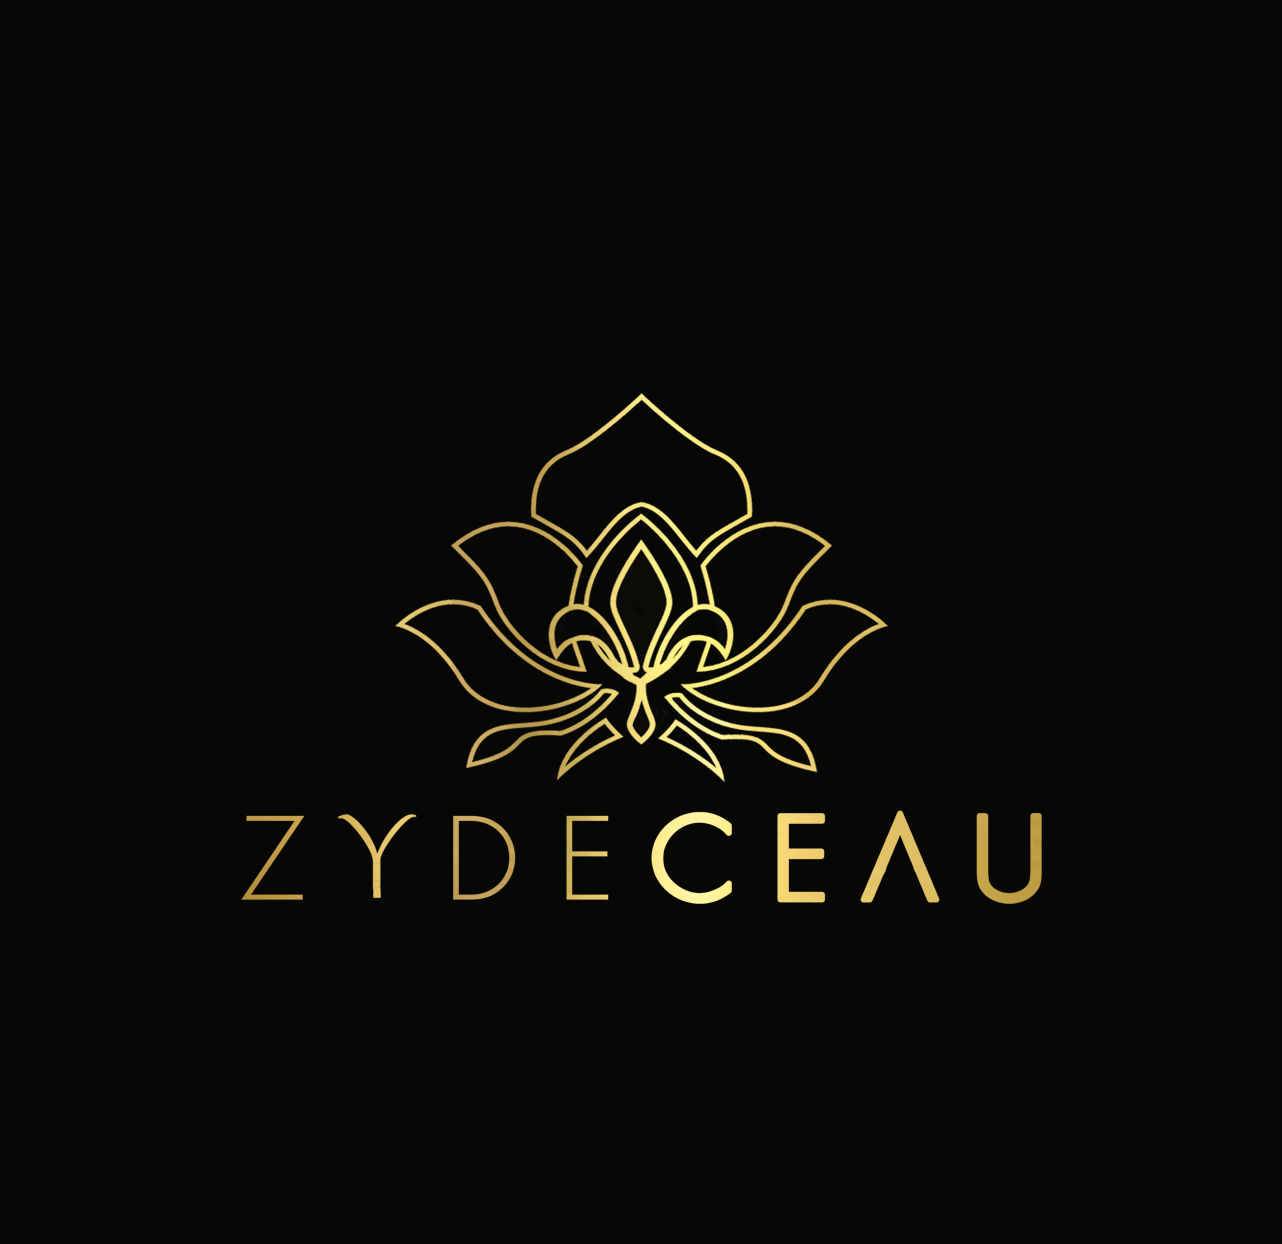 zydeblk